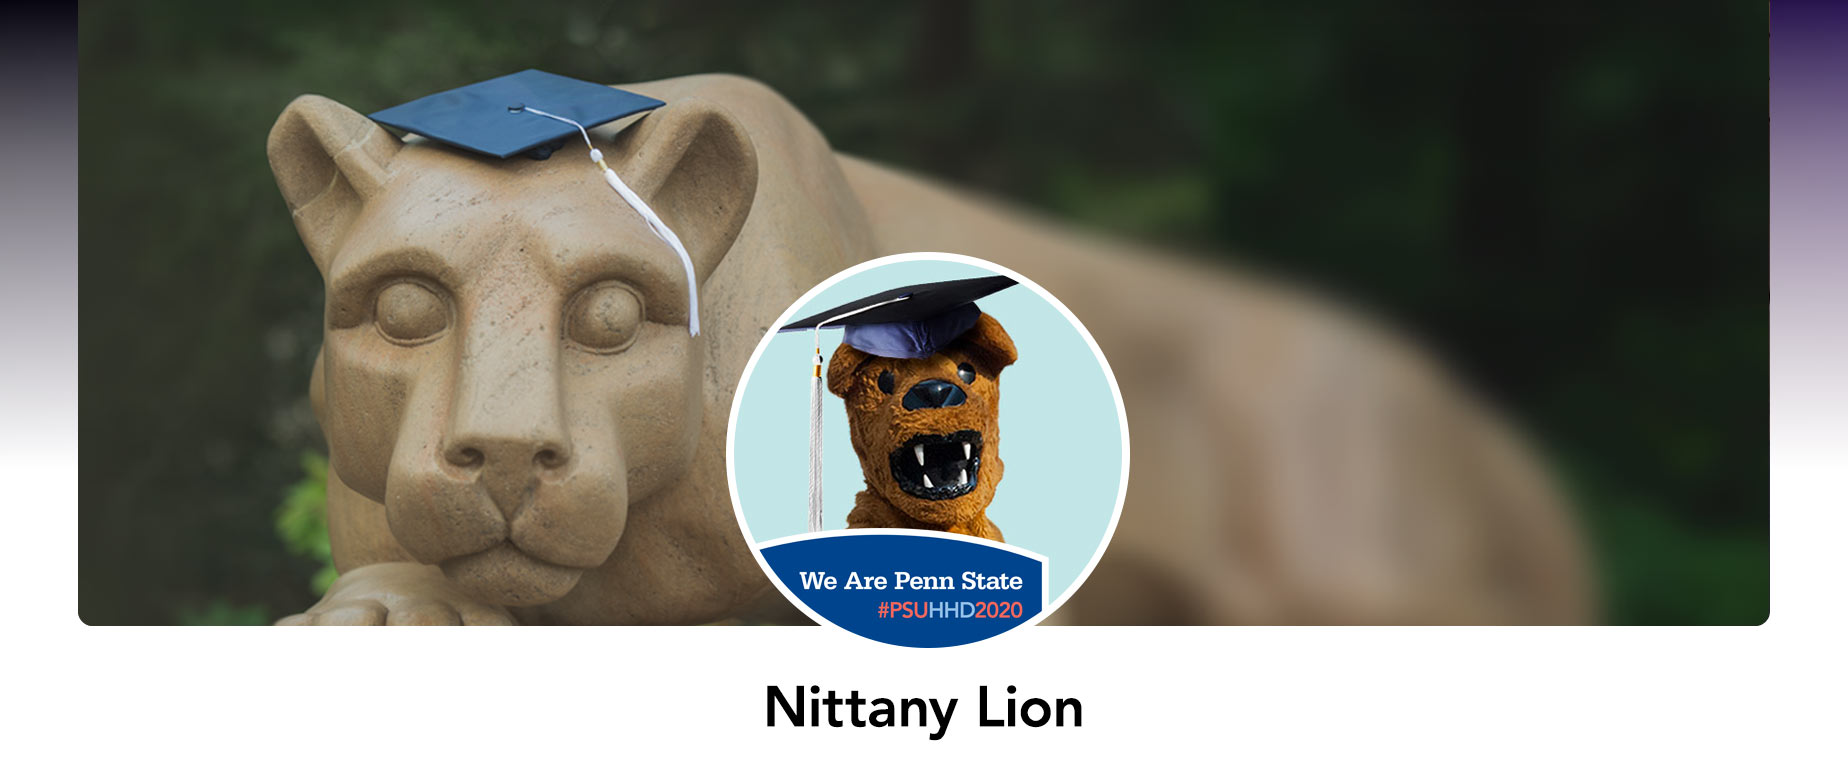 A mock up of the Nittany Lion's Facebook Profile